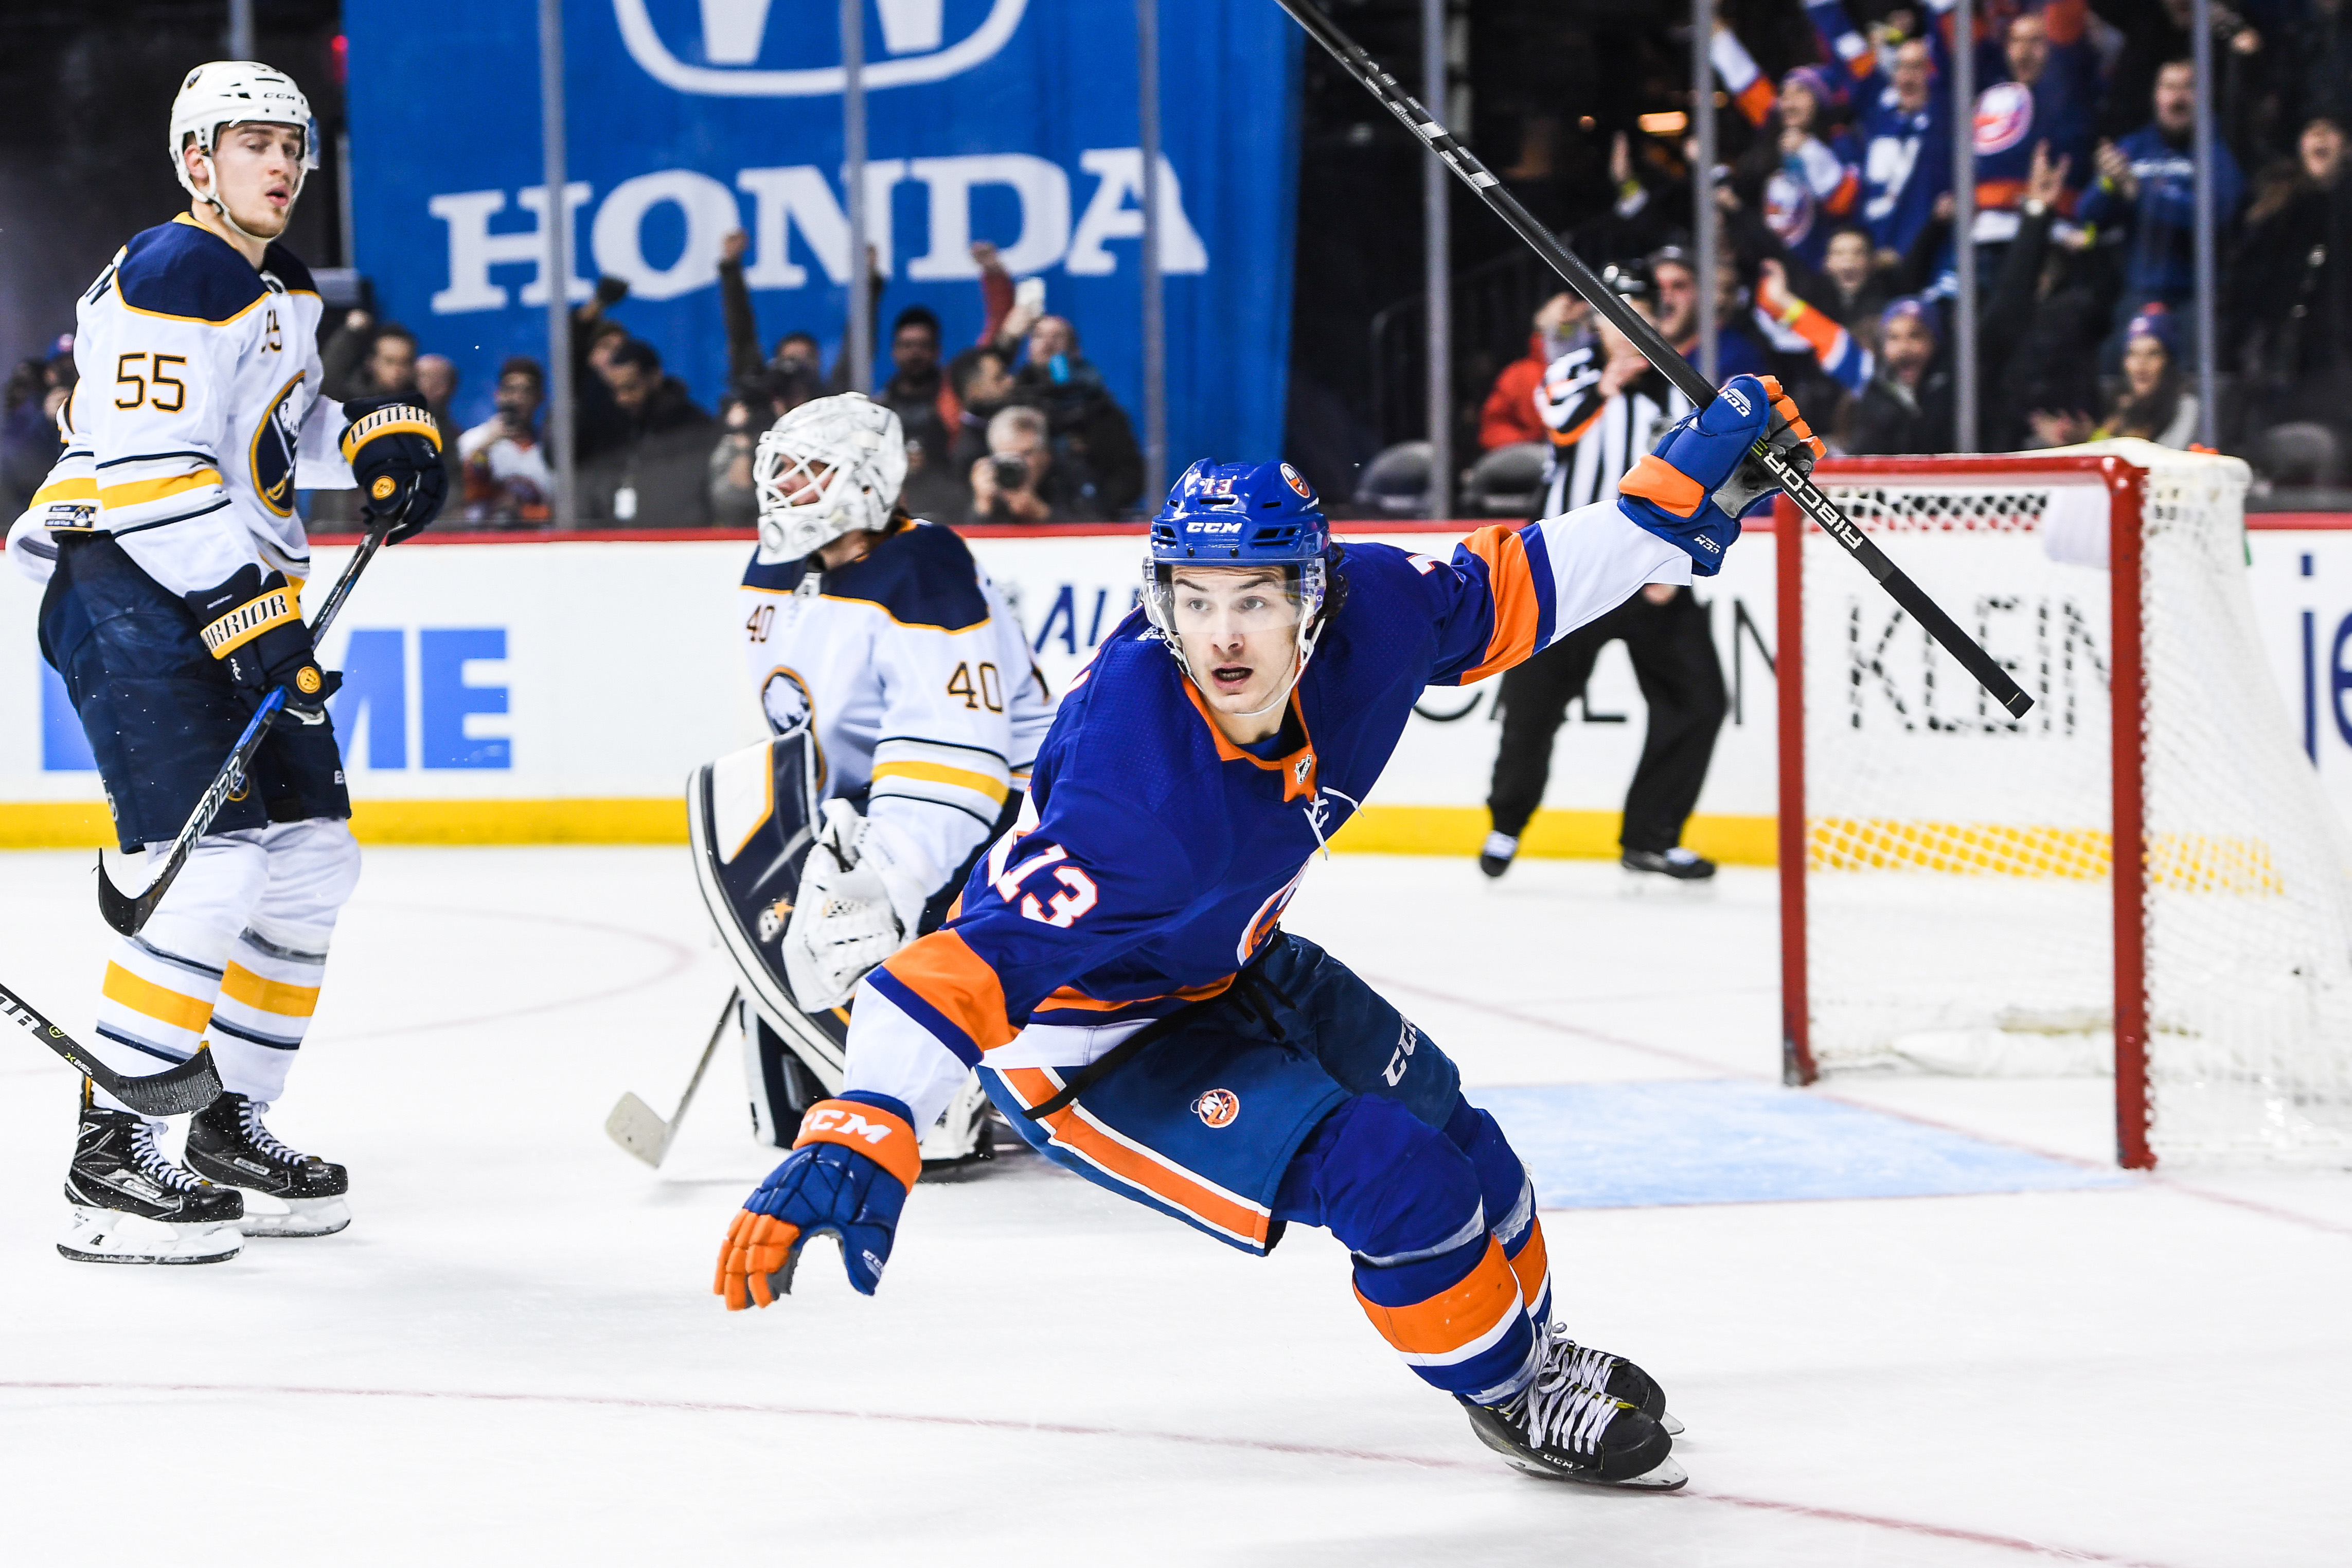 Dec 27, 2017; Brooklyn, NY, USA; New York Islanders center Mathew Barzal (13) celebrates his goal in overtime to win the game 3-2 during the overtime period go the game between the New York Islanders and the Buffalo Sabres at Barclays Center. Mandatory Credit: Dennis Schneidler-USA TODAY Sports